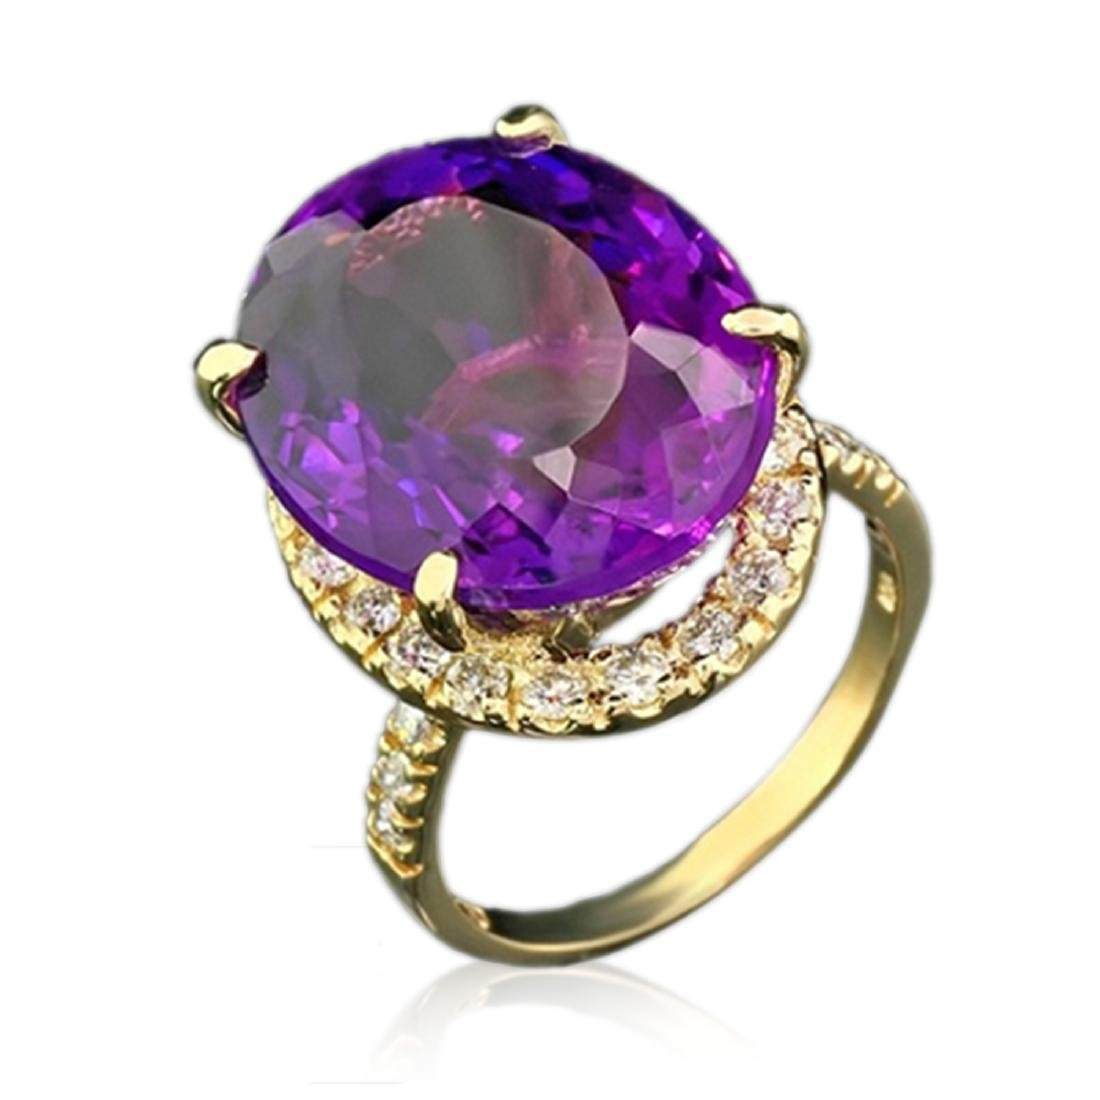 17.86 Carat Natural Amethyst 18K Solid Yellow Gold